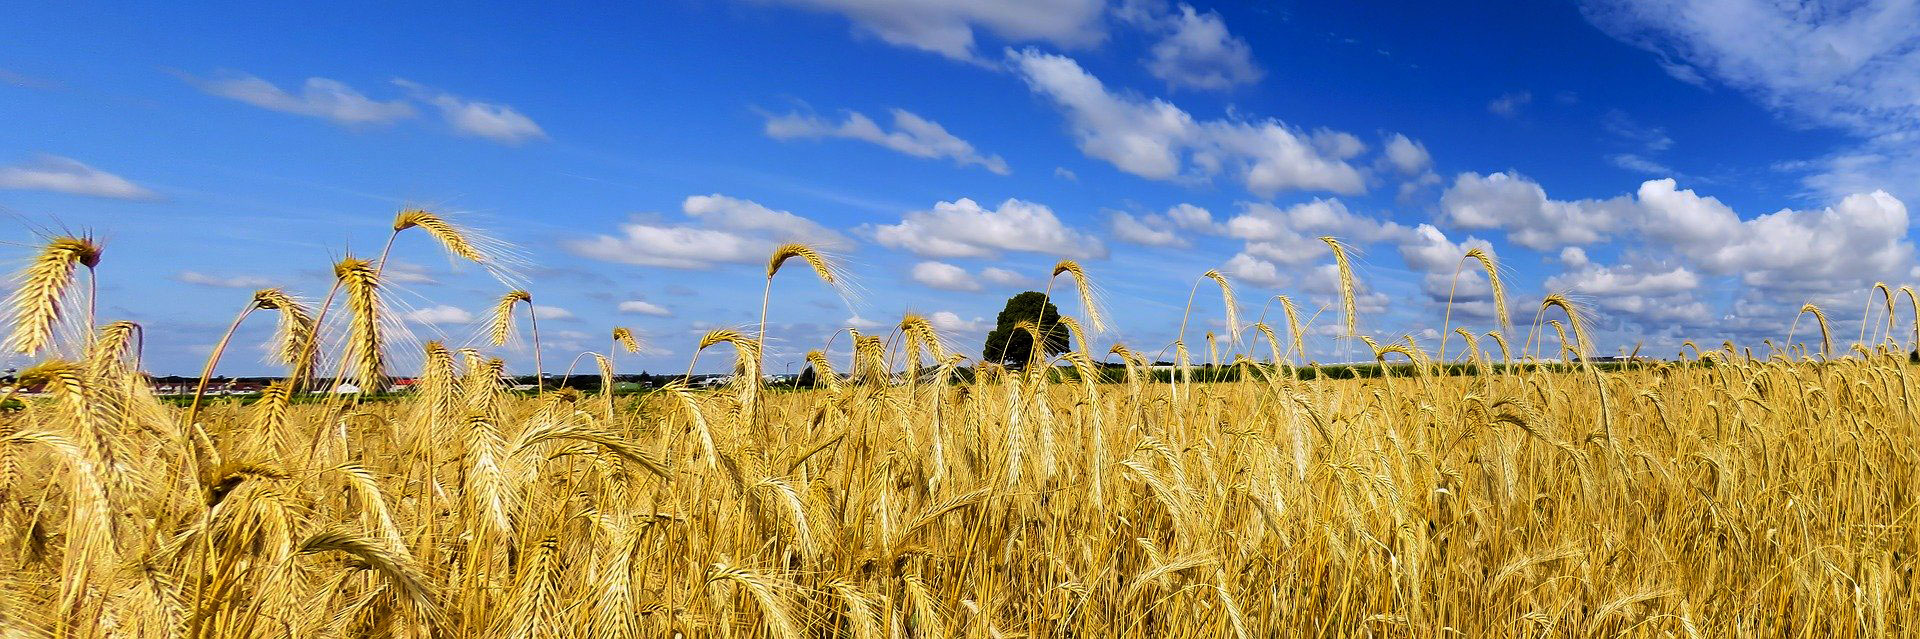 Agriculture paysage